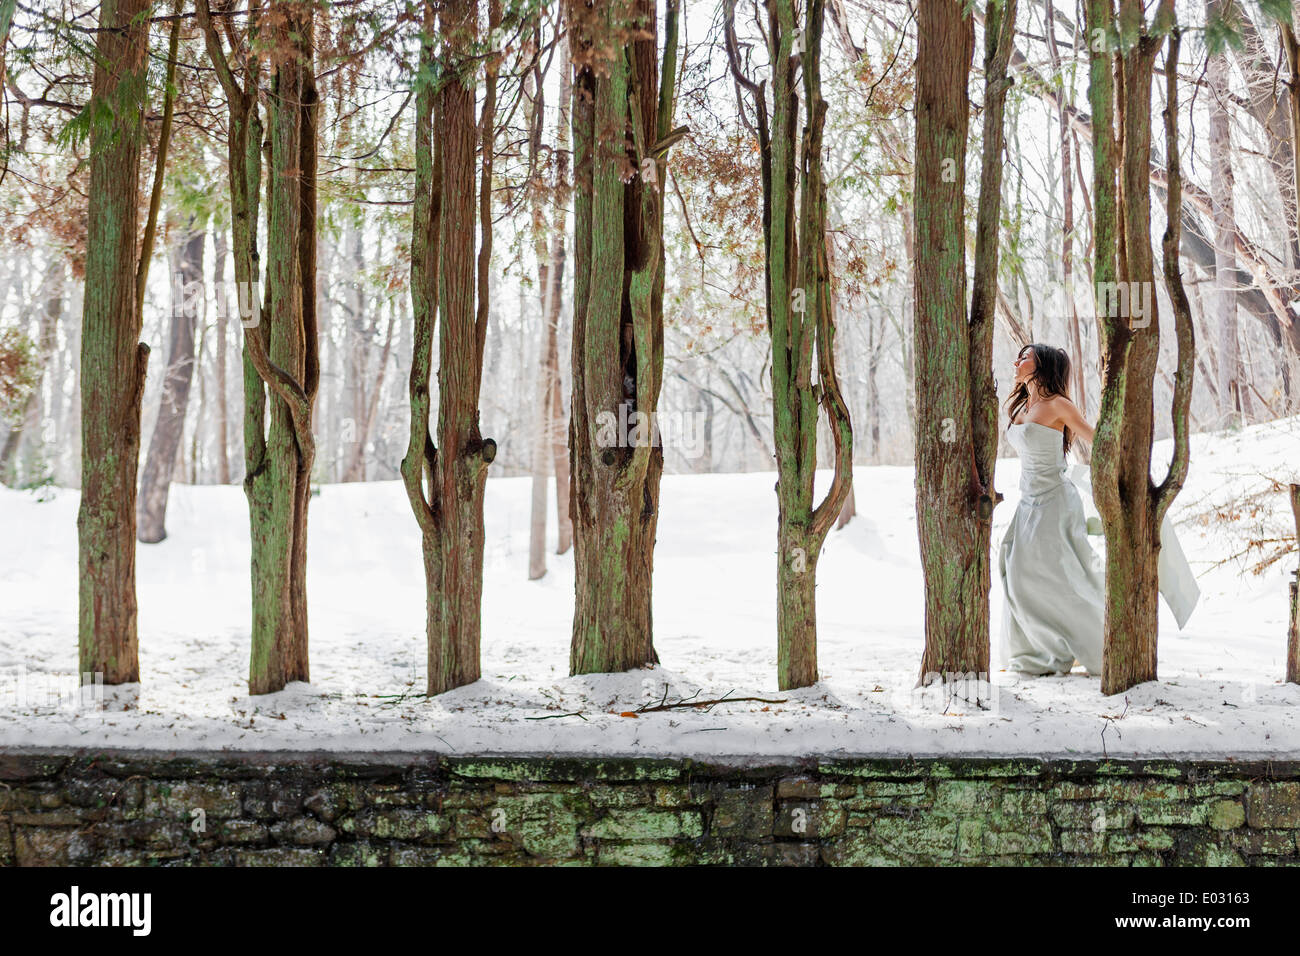 A woman in a ball gown outdoors in the snow. Stock Photo